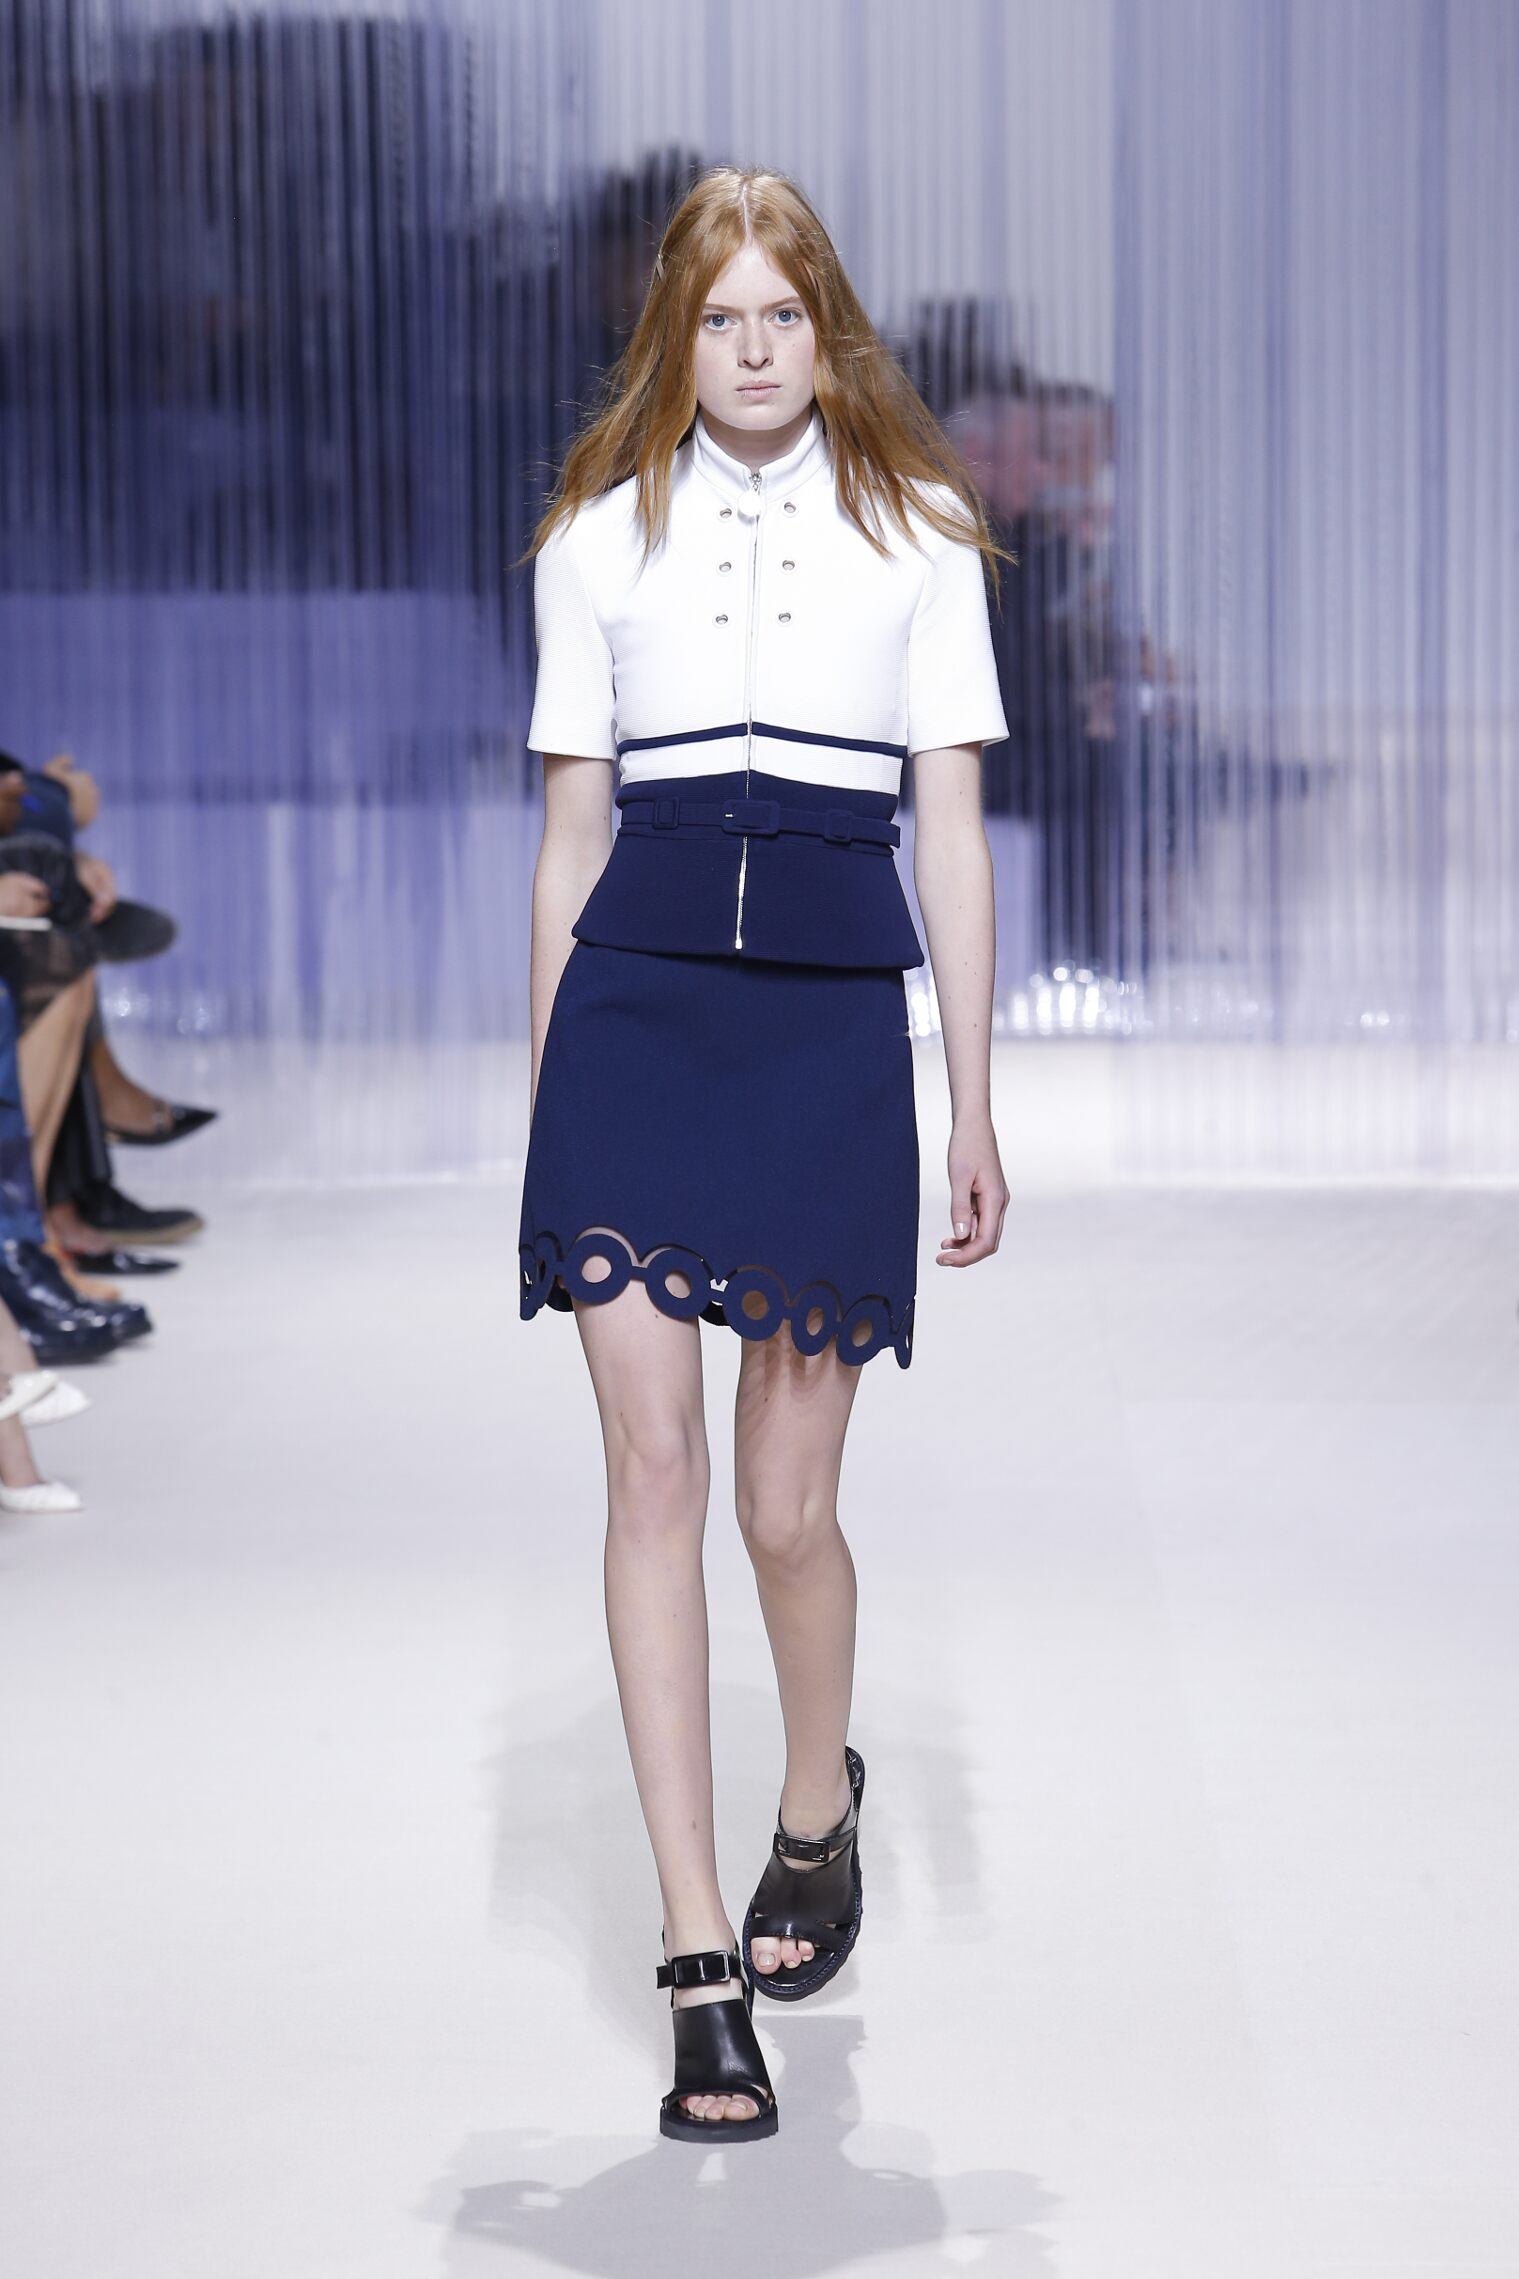 Fashion Woman Model Carven Catwalk